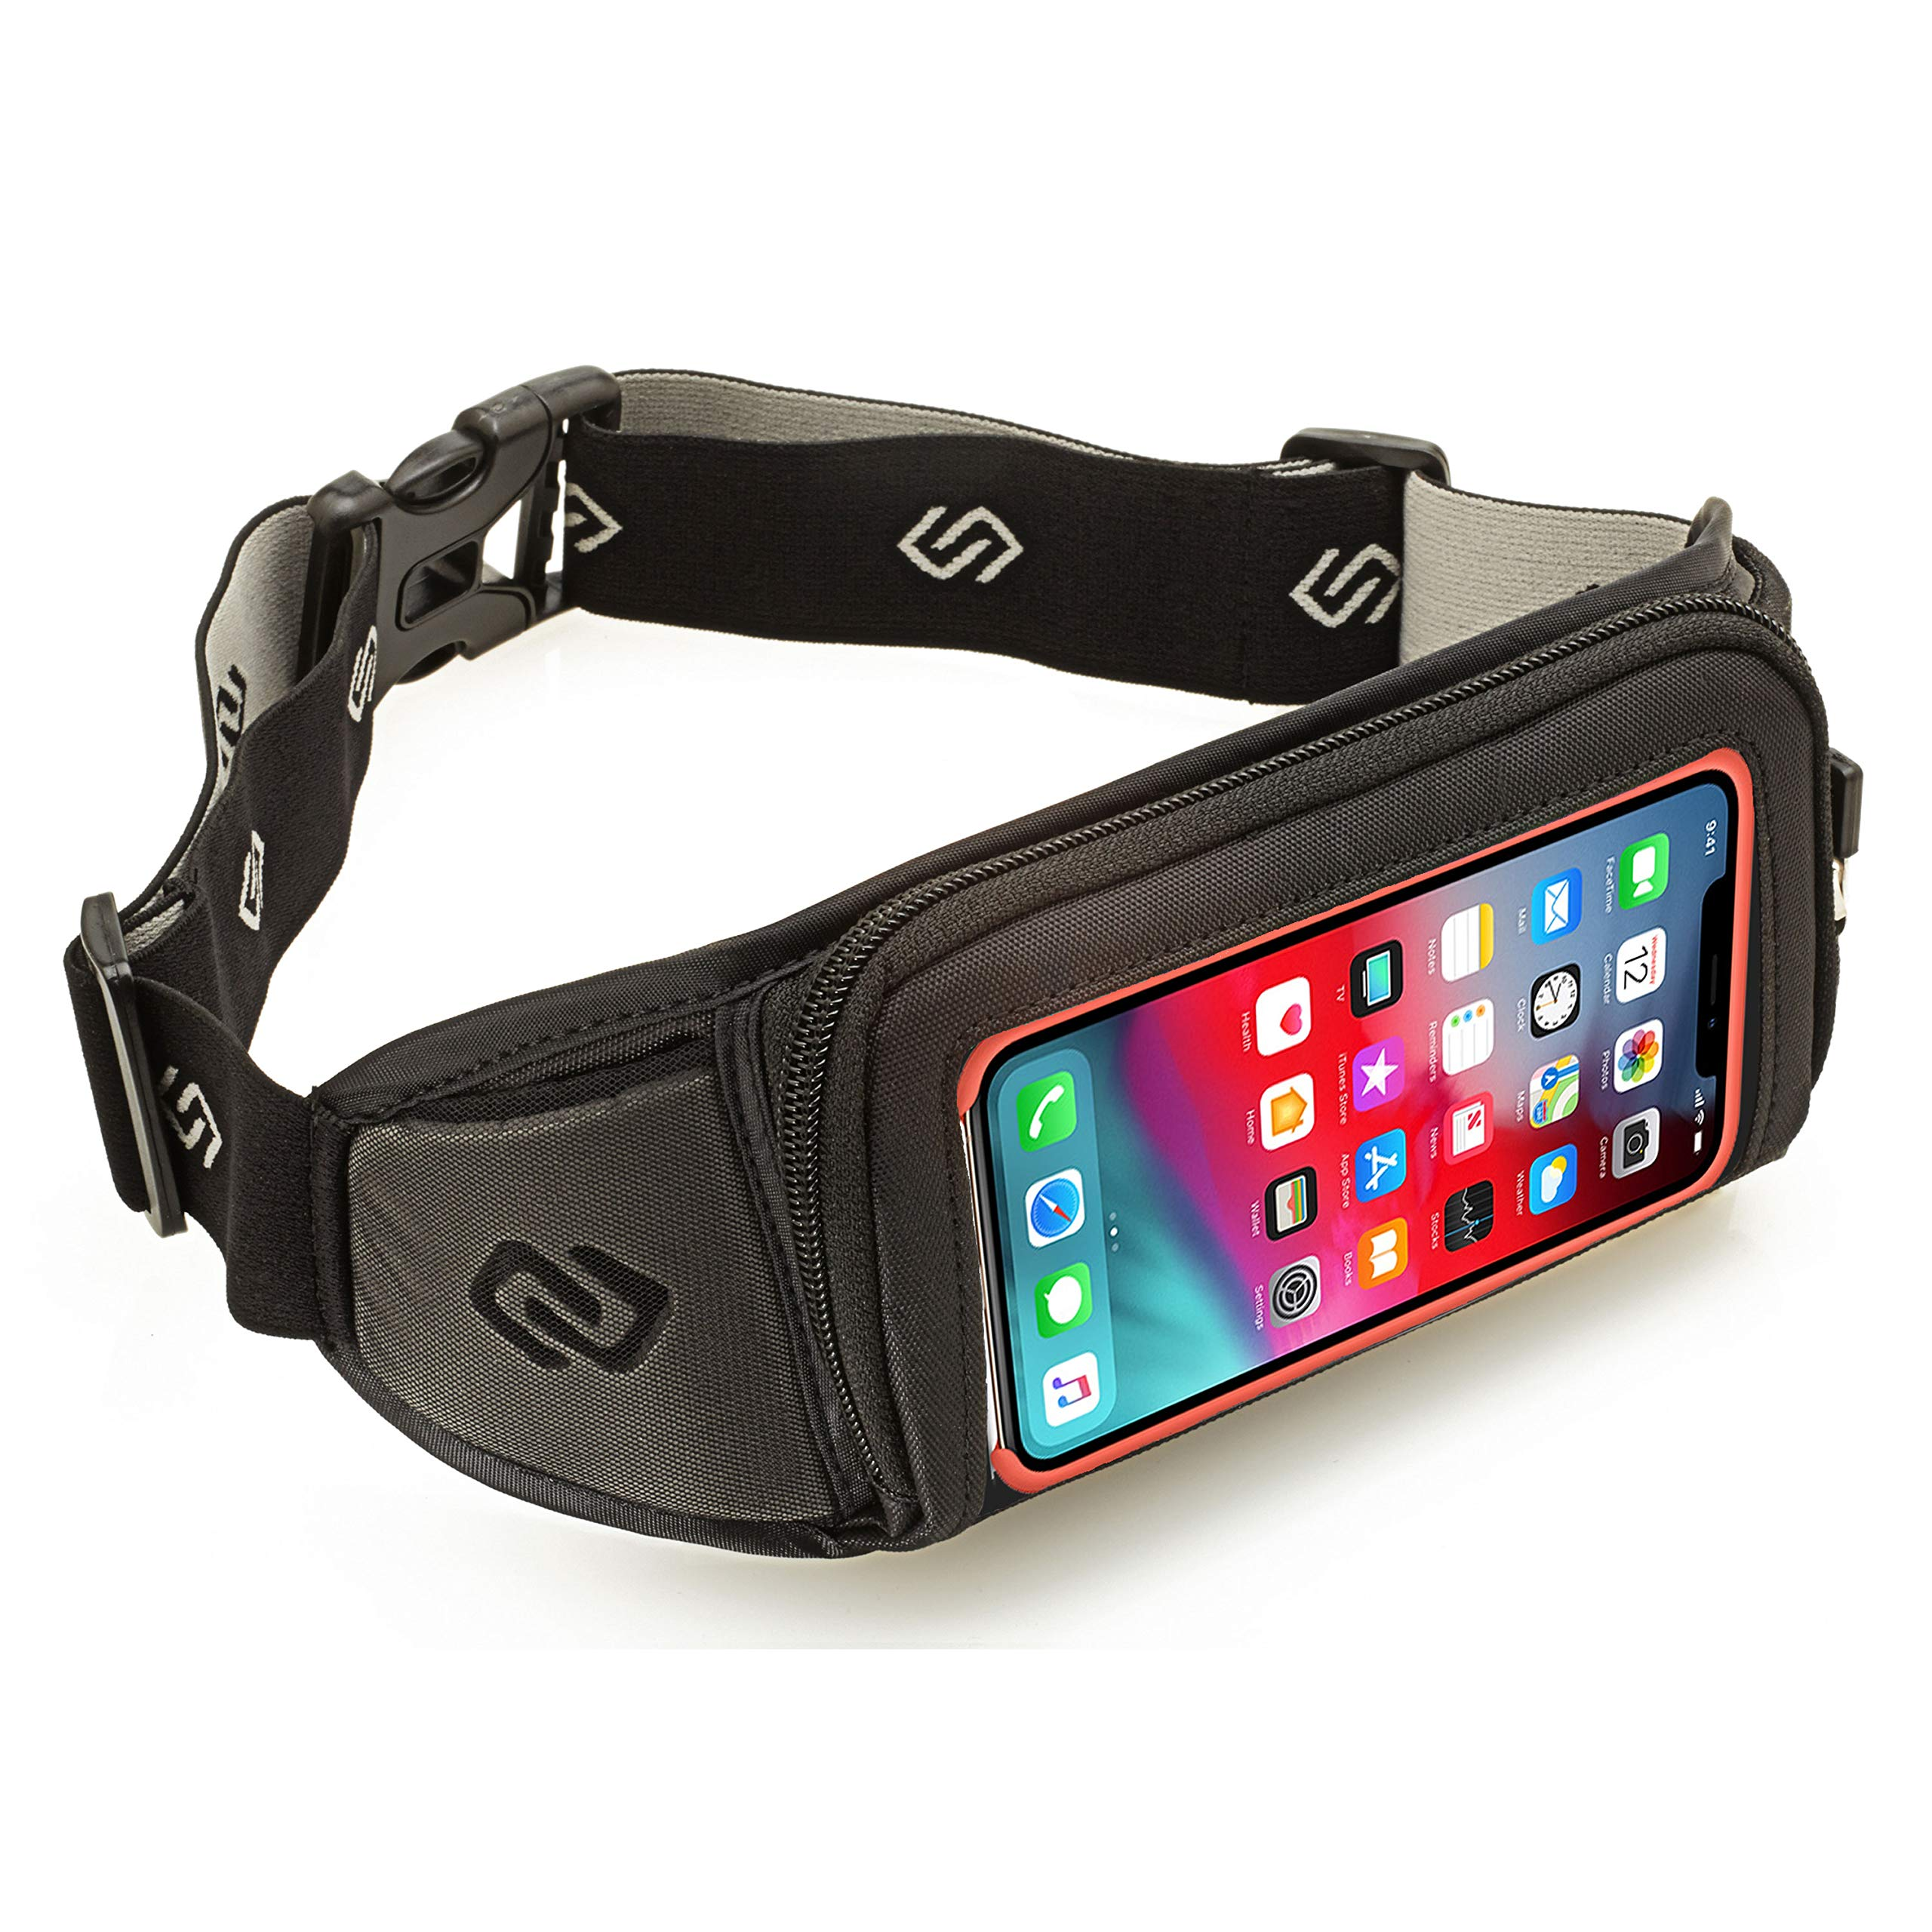 Sporteer Kinetic K1 Running Belt Waist Pack - Compatible with iPhone 13 Pro Max, 13 Pro, 13, 12/11 Pro Max, Xs Max, XR, X, 8 Plus, Galaxy S20 Plus, 10 Plus, Note 10+, 9, S9+, Pixel 4 XL, LG, Moto - Fits Cases